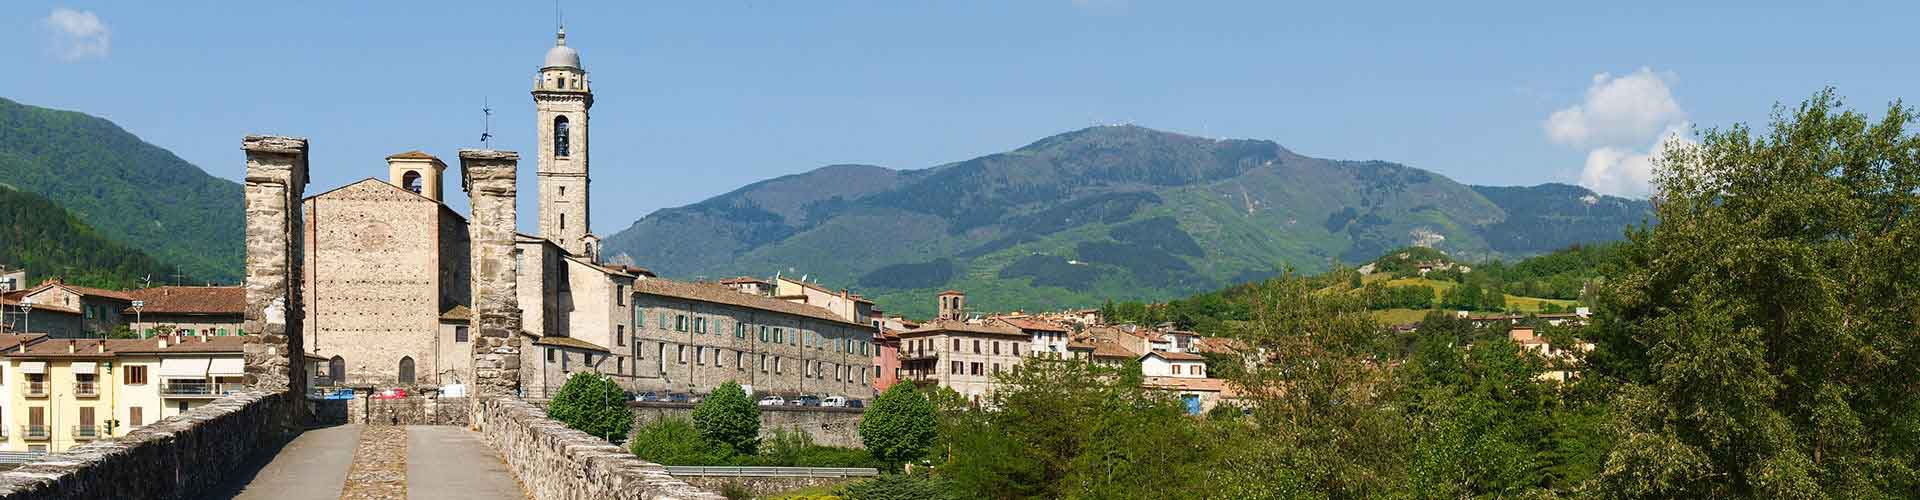 Piacenza – Hostels in Piacenza. Maps for Piacenza, Photos and Reviews for each hostel in Piacenza.